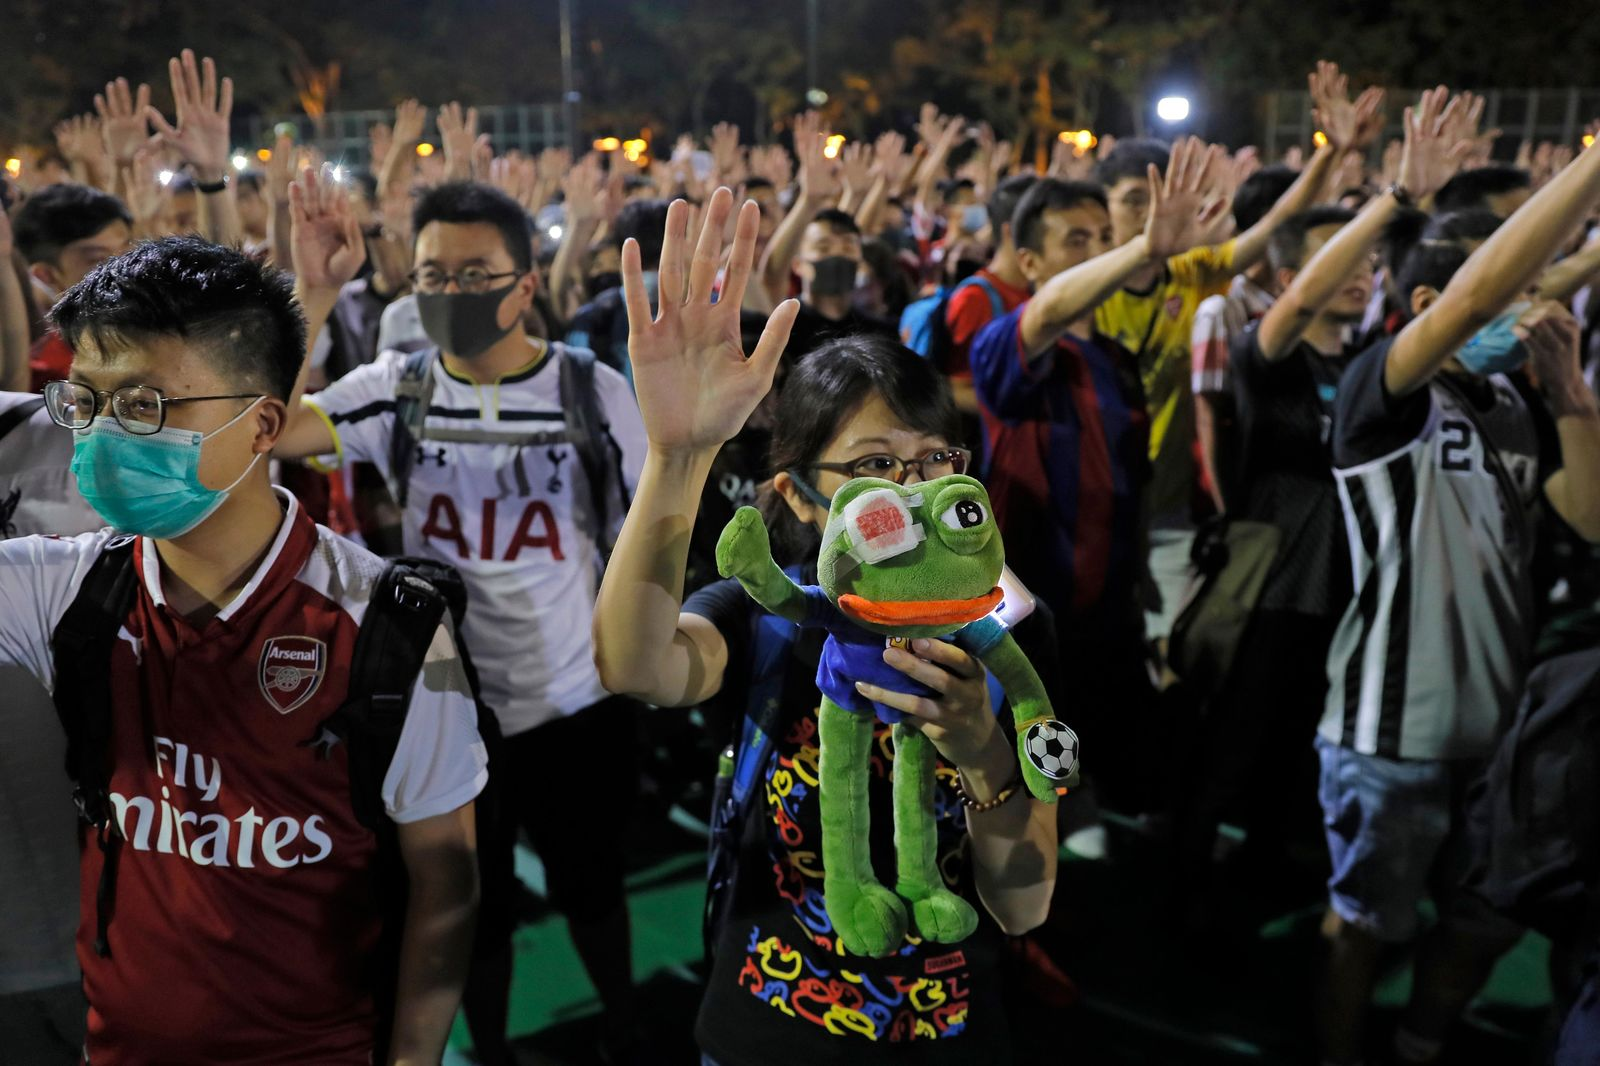 A pro-democracy football fan shows a frog toy as she forms part of a human chain at Victoria Park in Hong Kong, Wednesday, Sept. 18, 2019. . (AP Photo/Kin Cheung)